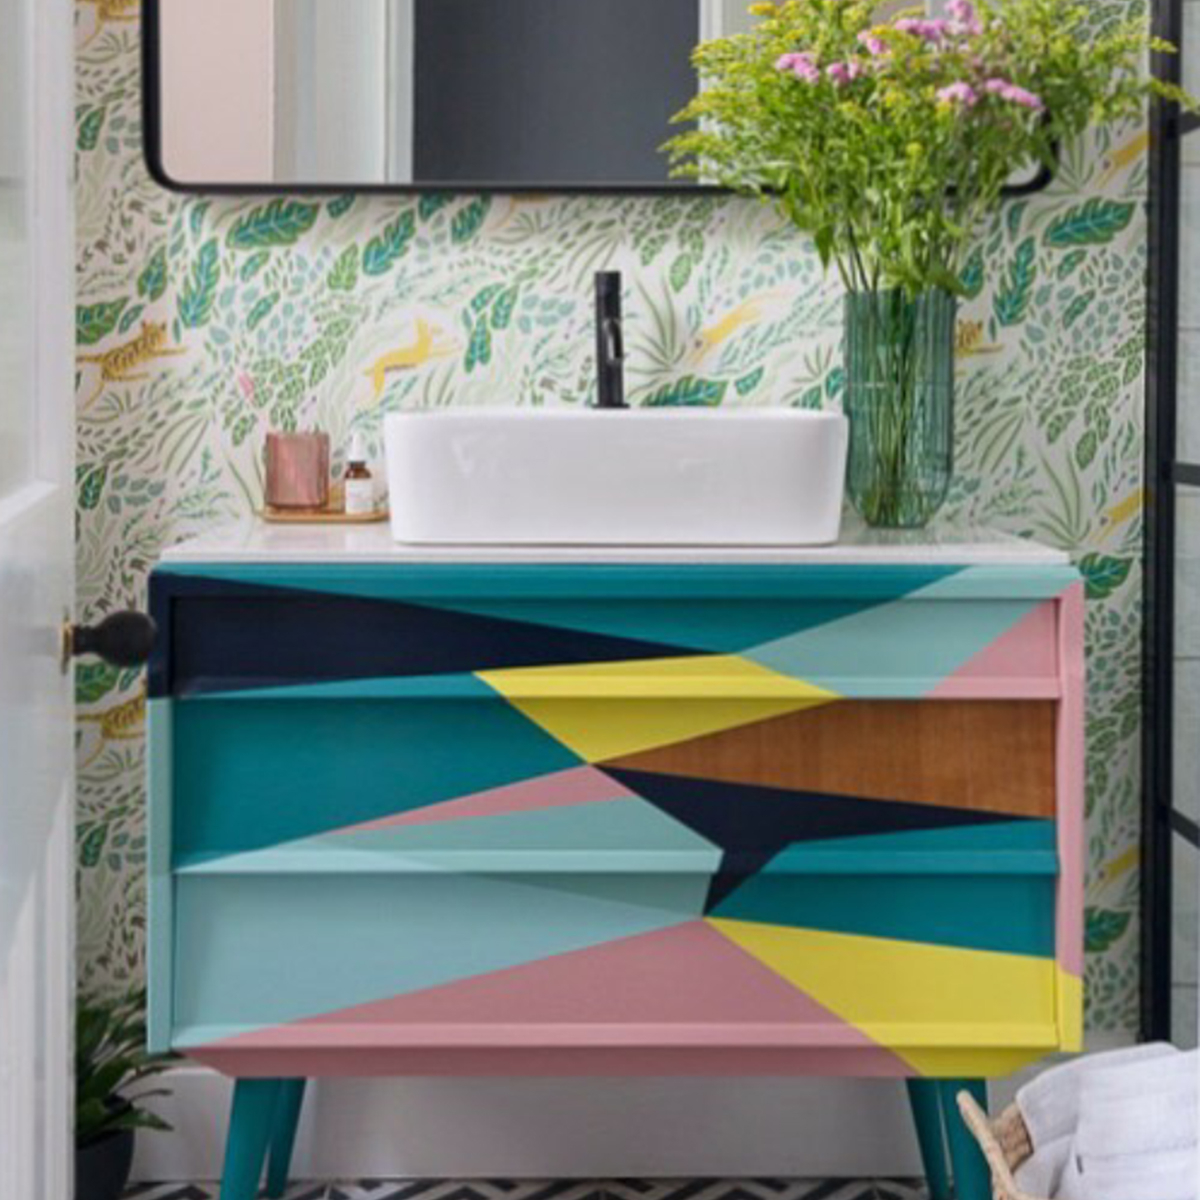 The overall winner in the Anglian Styled By Me Competition. Judge Sophie Robinson loves patterned wallpaper in a small bathroom, as it adds a splash of character and interest. The painted basin unit is a unique design featuring an abstract painted effect taking inspiration from the colours in the wallpaper. #bathroomdesign #paintedunit #sophierobinson